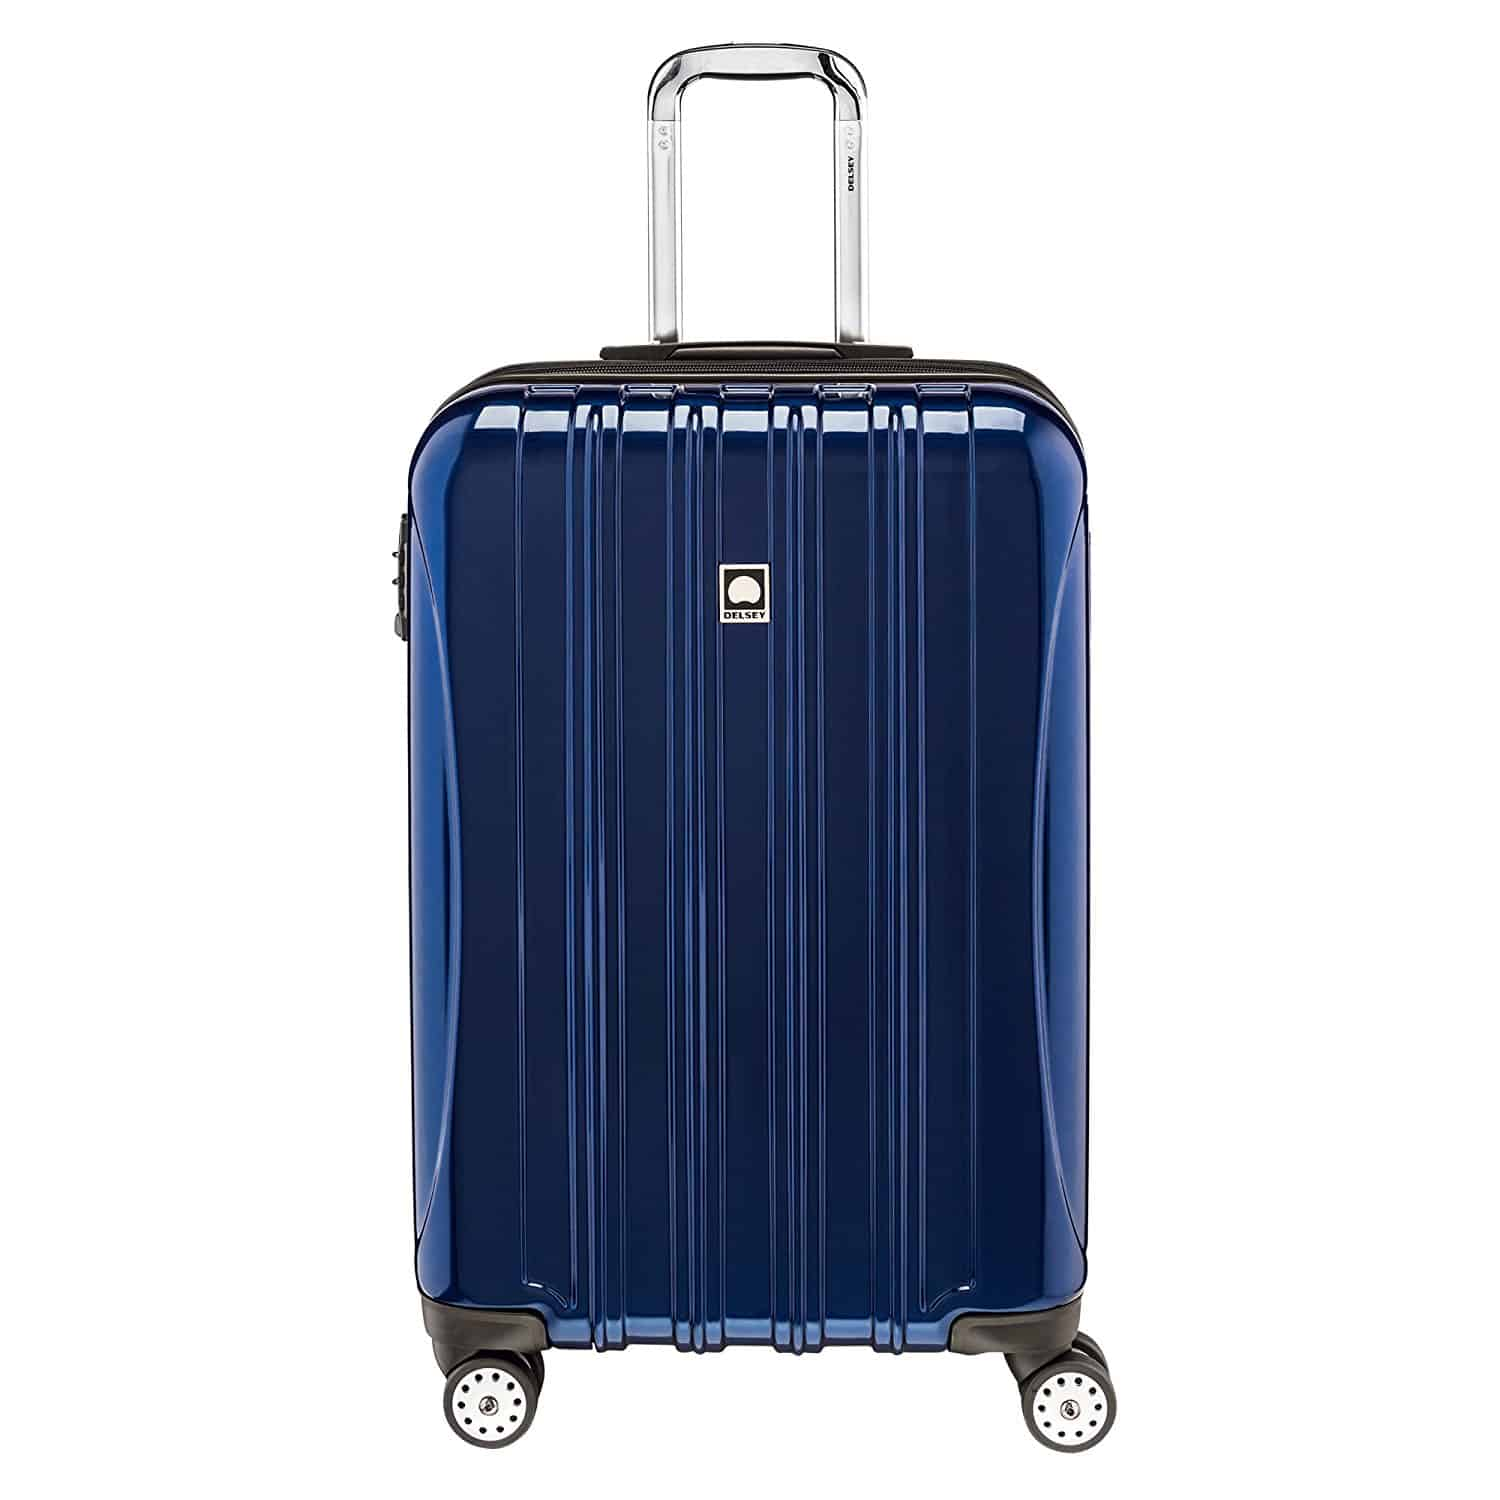 "Delsey Helium Aero 25"" Suitcase  - Tips for Picking the Best Travel Luggage"